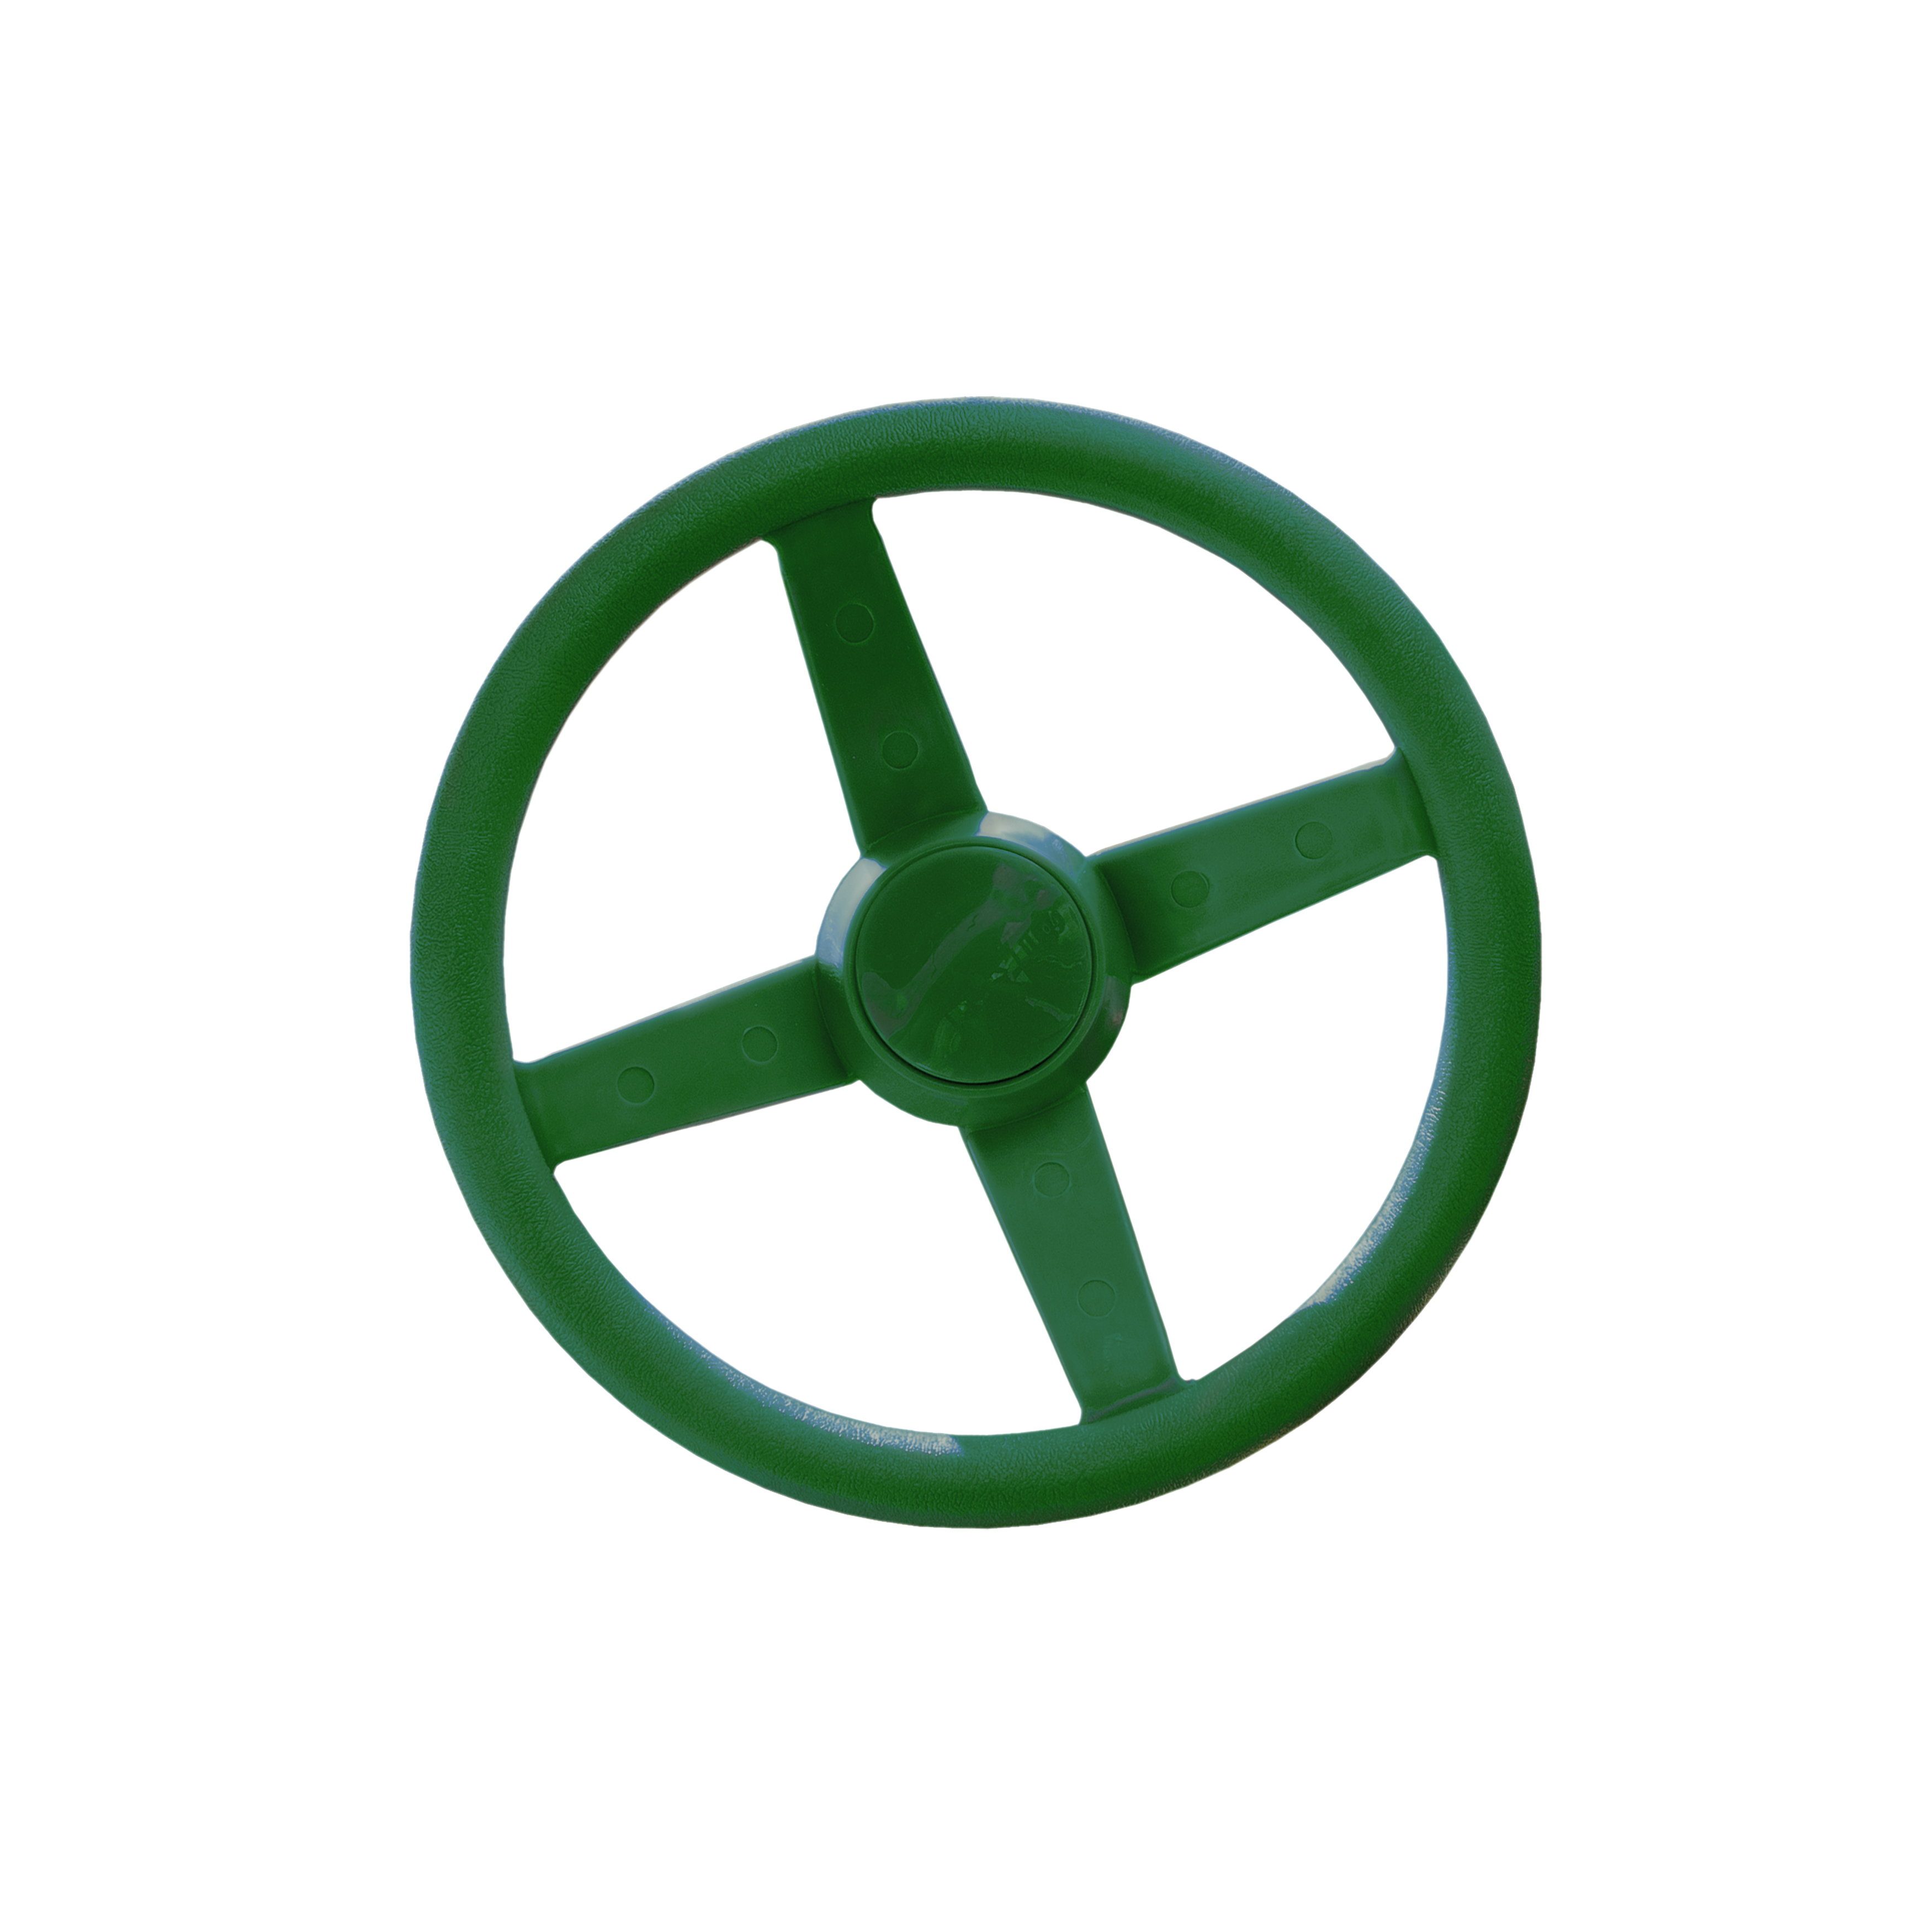 Gorilla Playsets Green Steering Wheel with Mounting Hardware ...